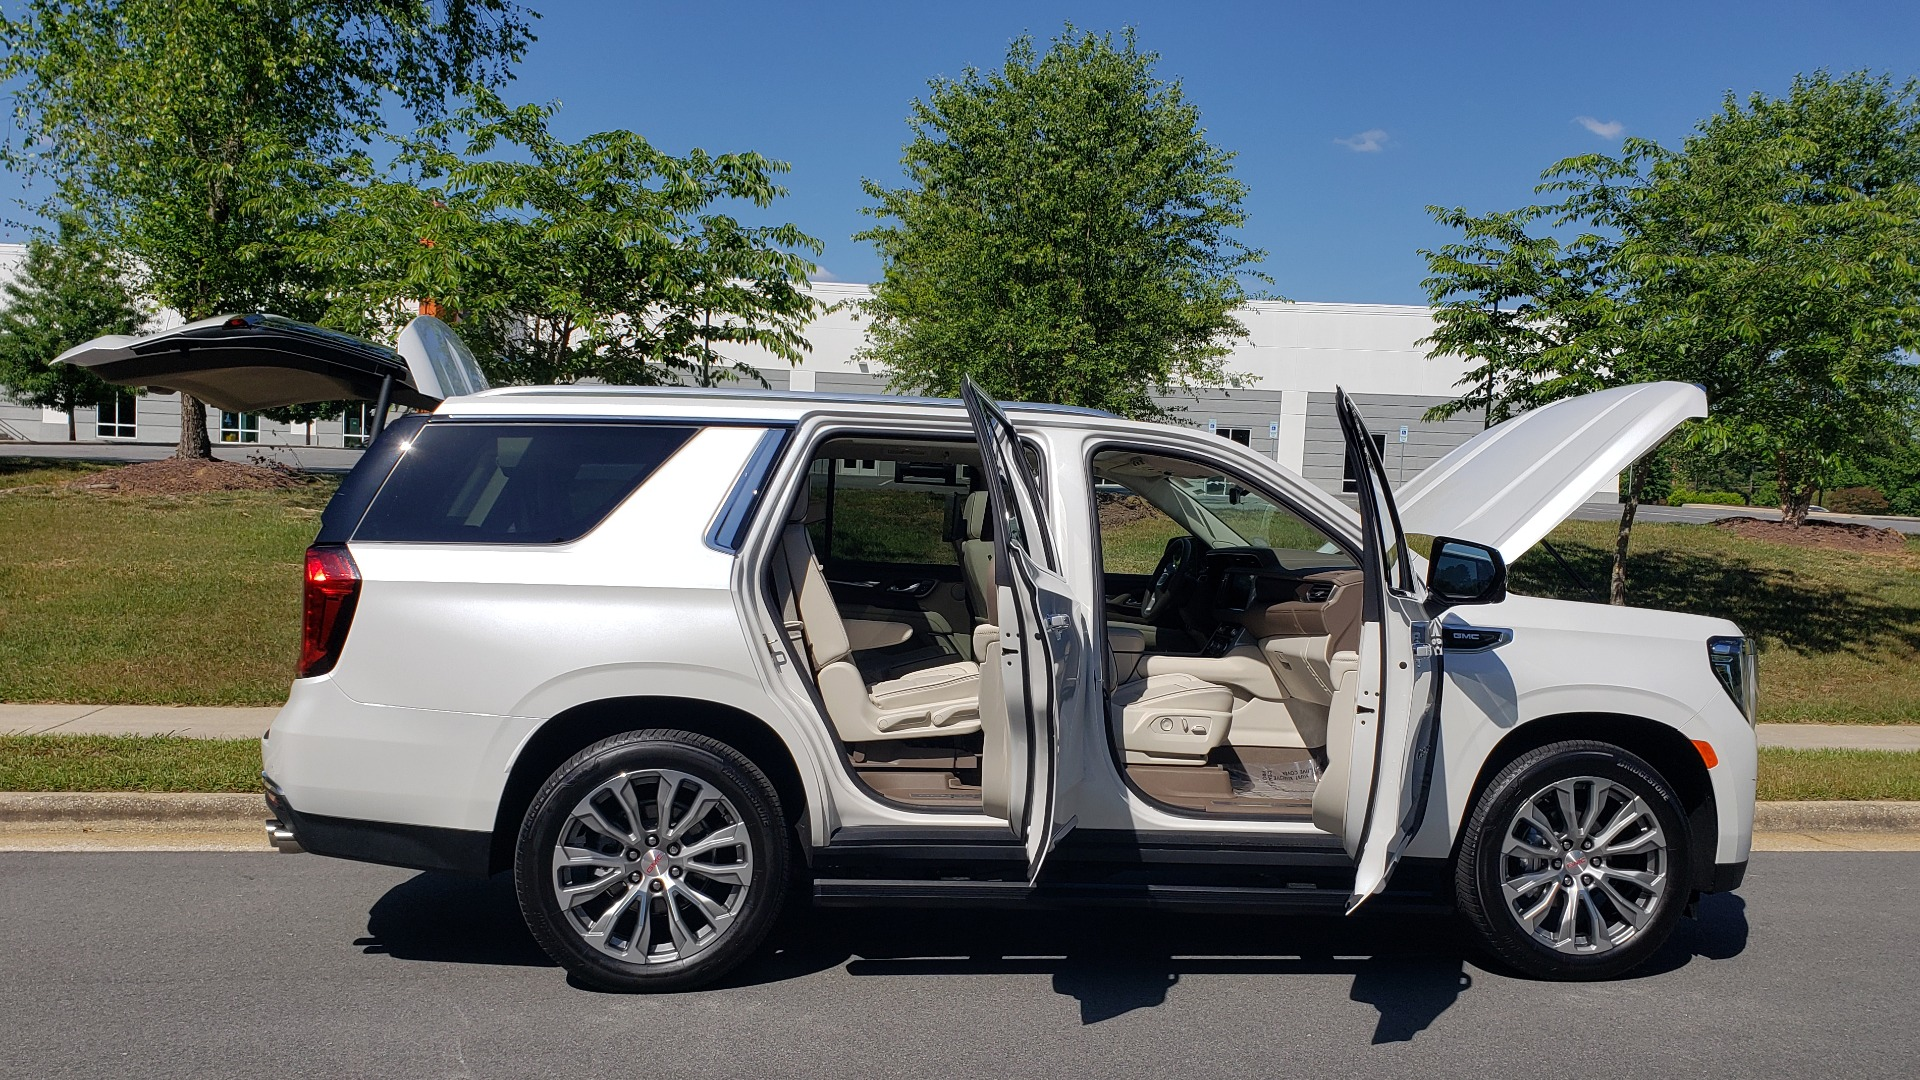 Used 2021 GMC YUKON DENALI PREM / 4WD / NAV / TECH / TRAILER / SECURITY / SUNROOF for sale Sold at Formula Imports in Charlotte NC 28227 19